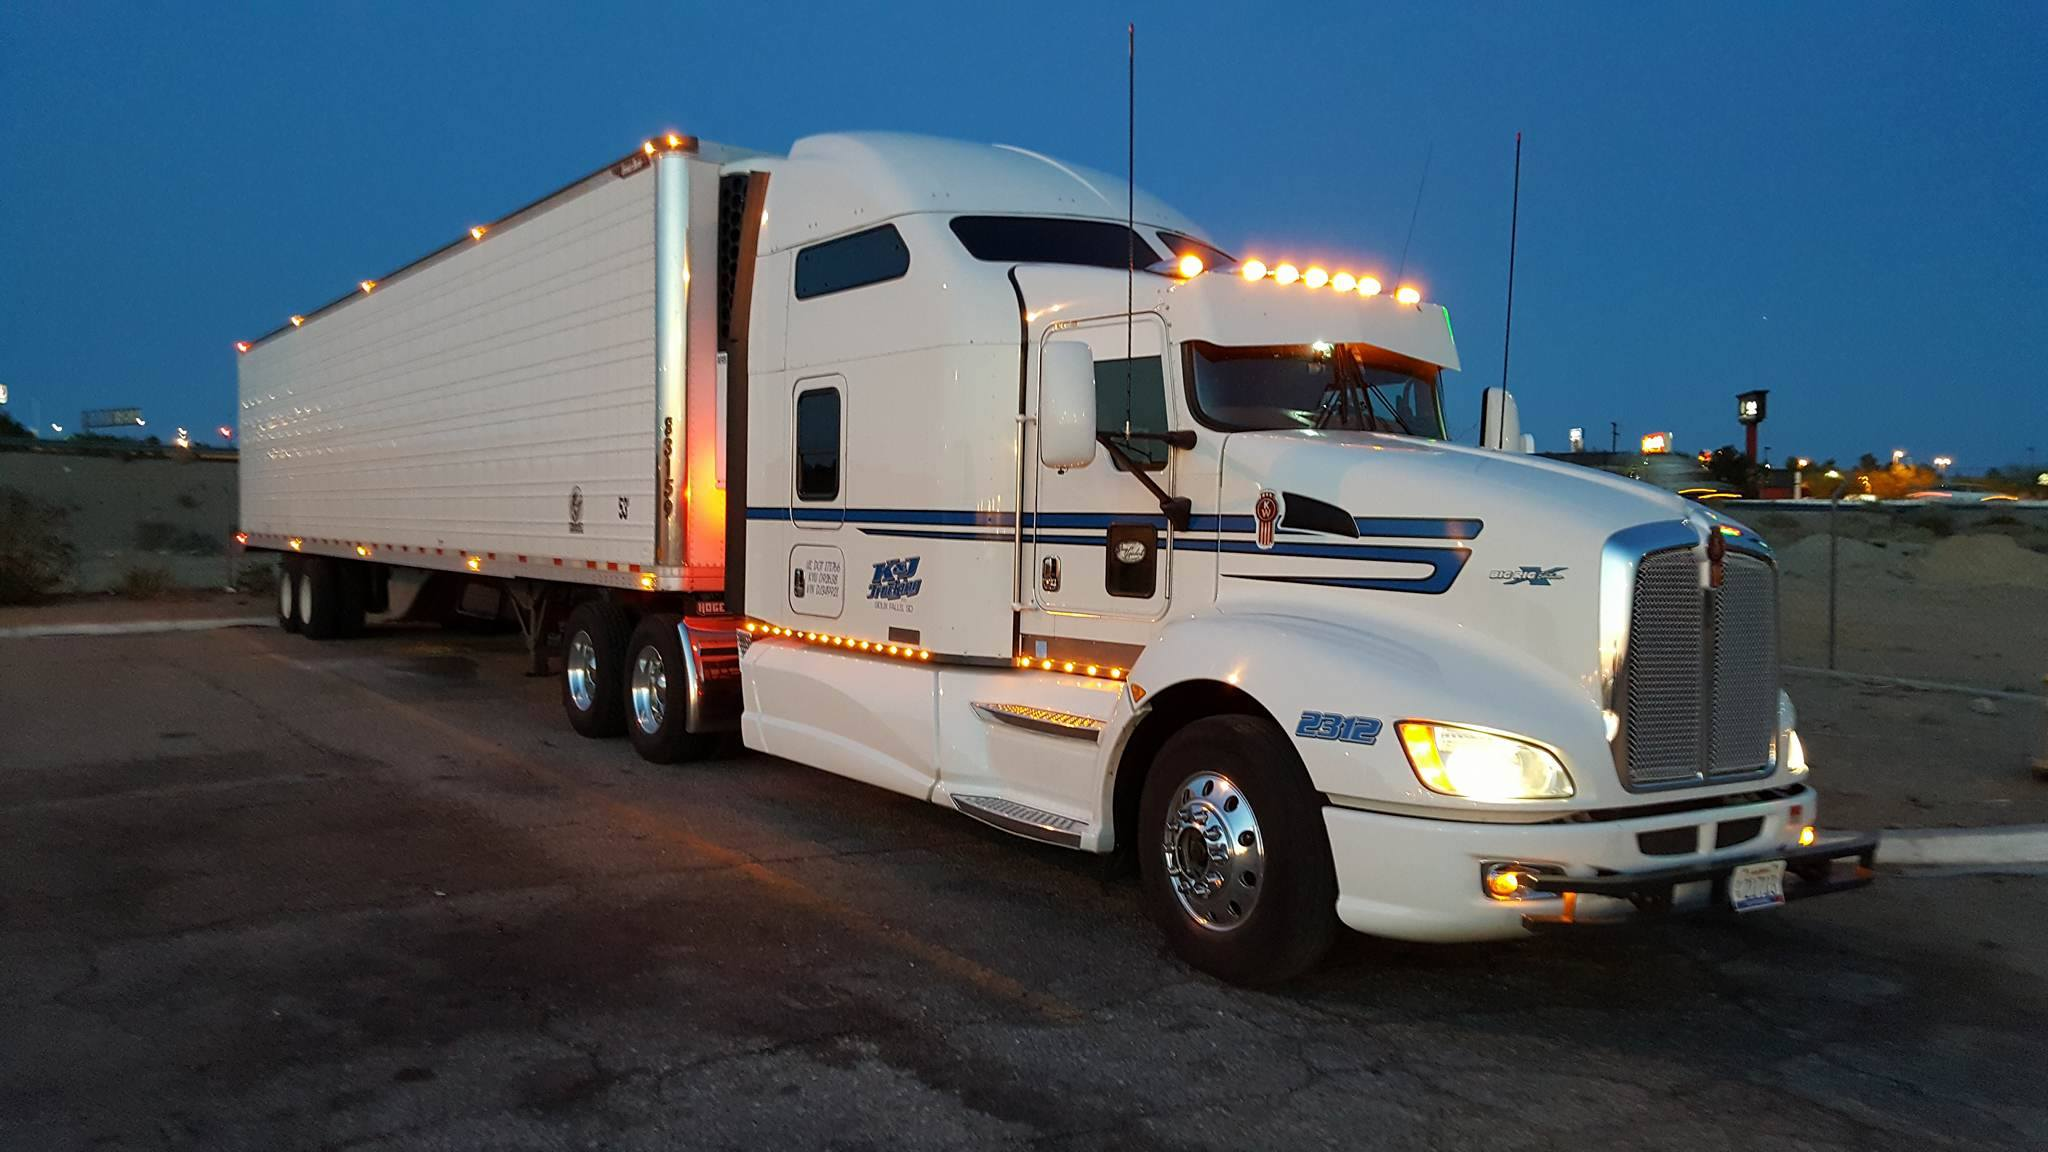 Neal's big rig, first picture.